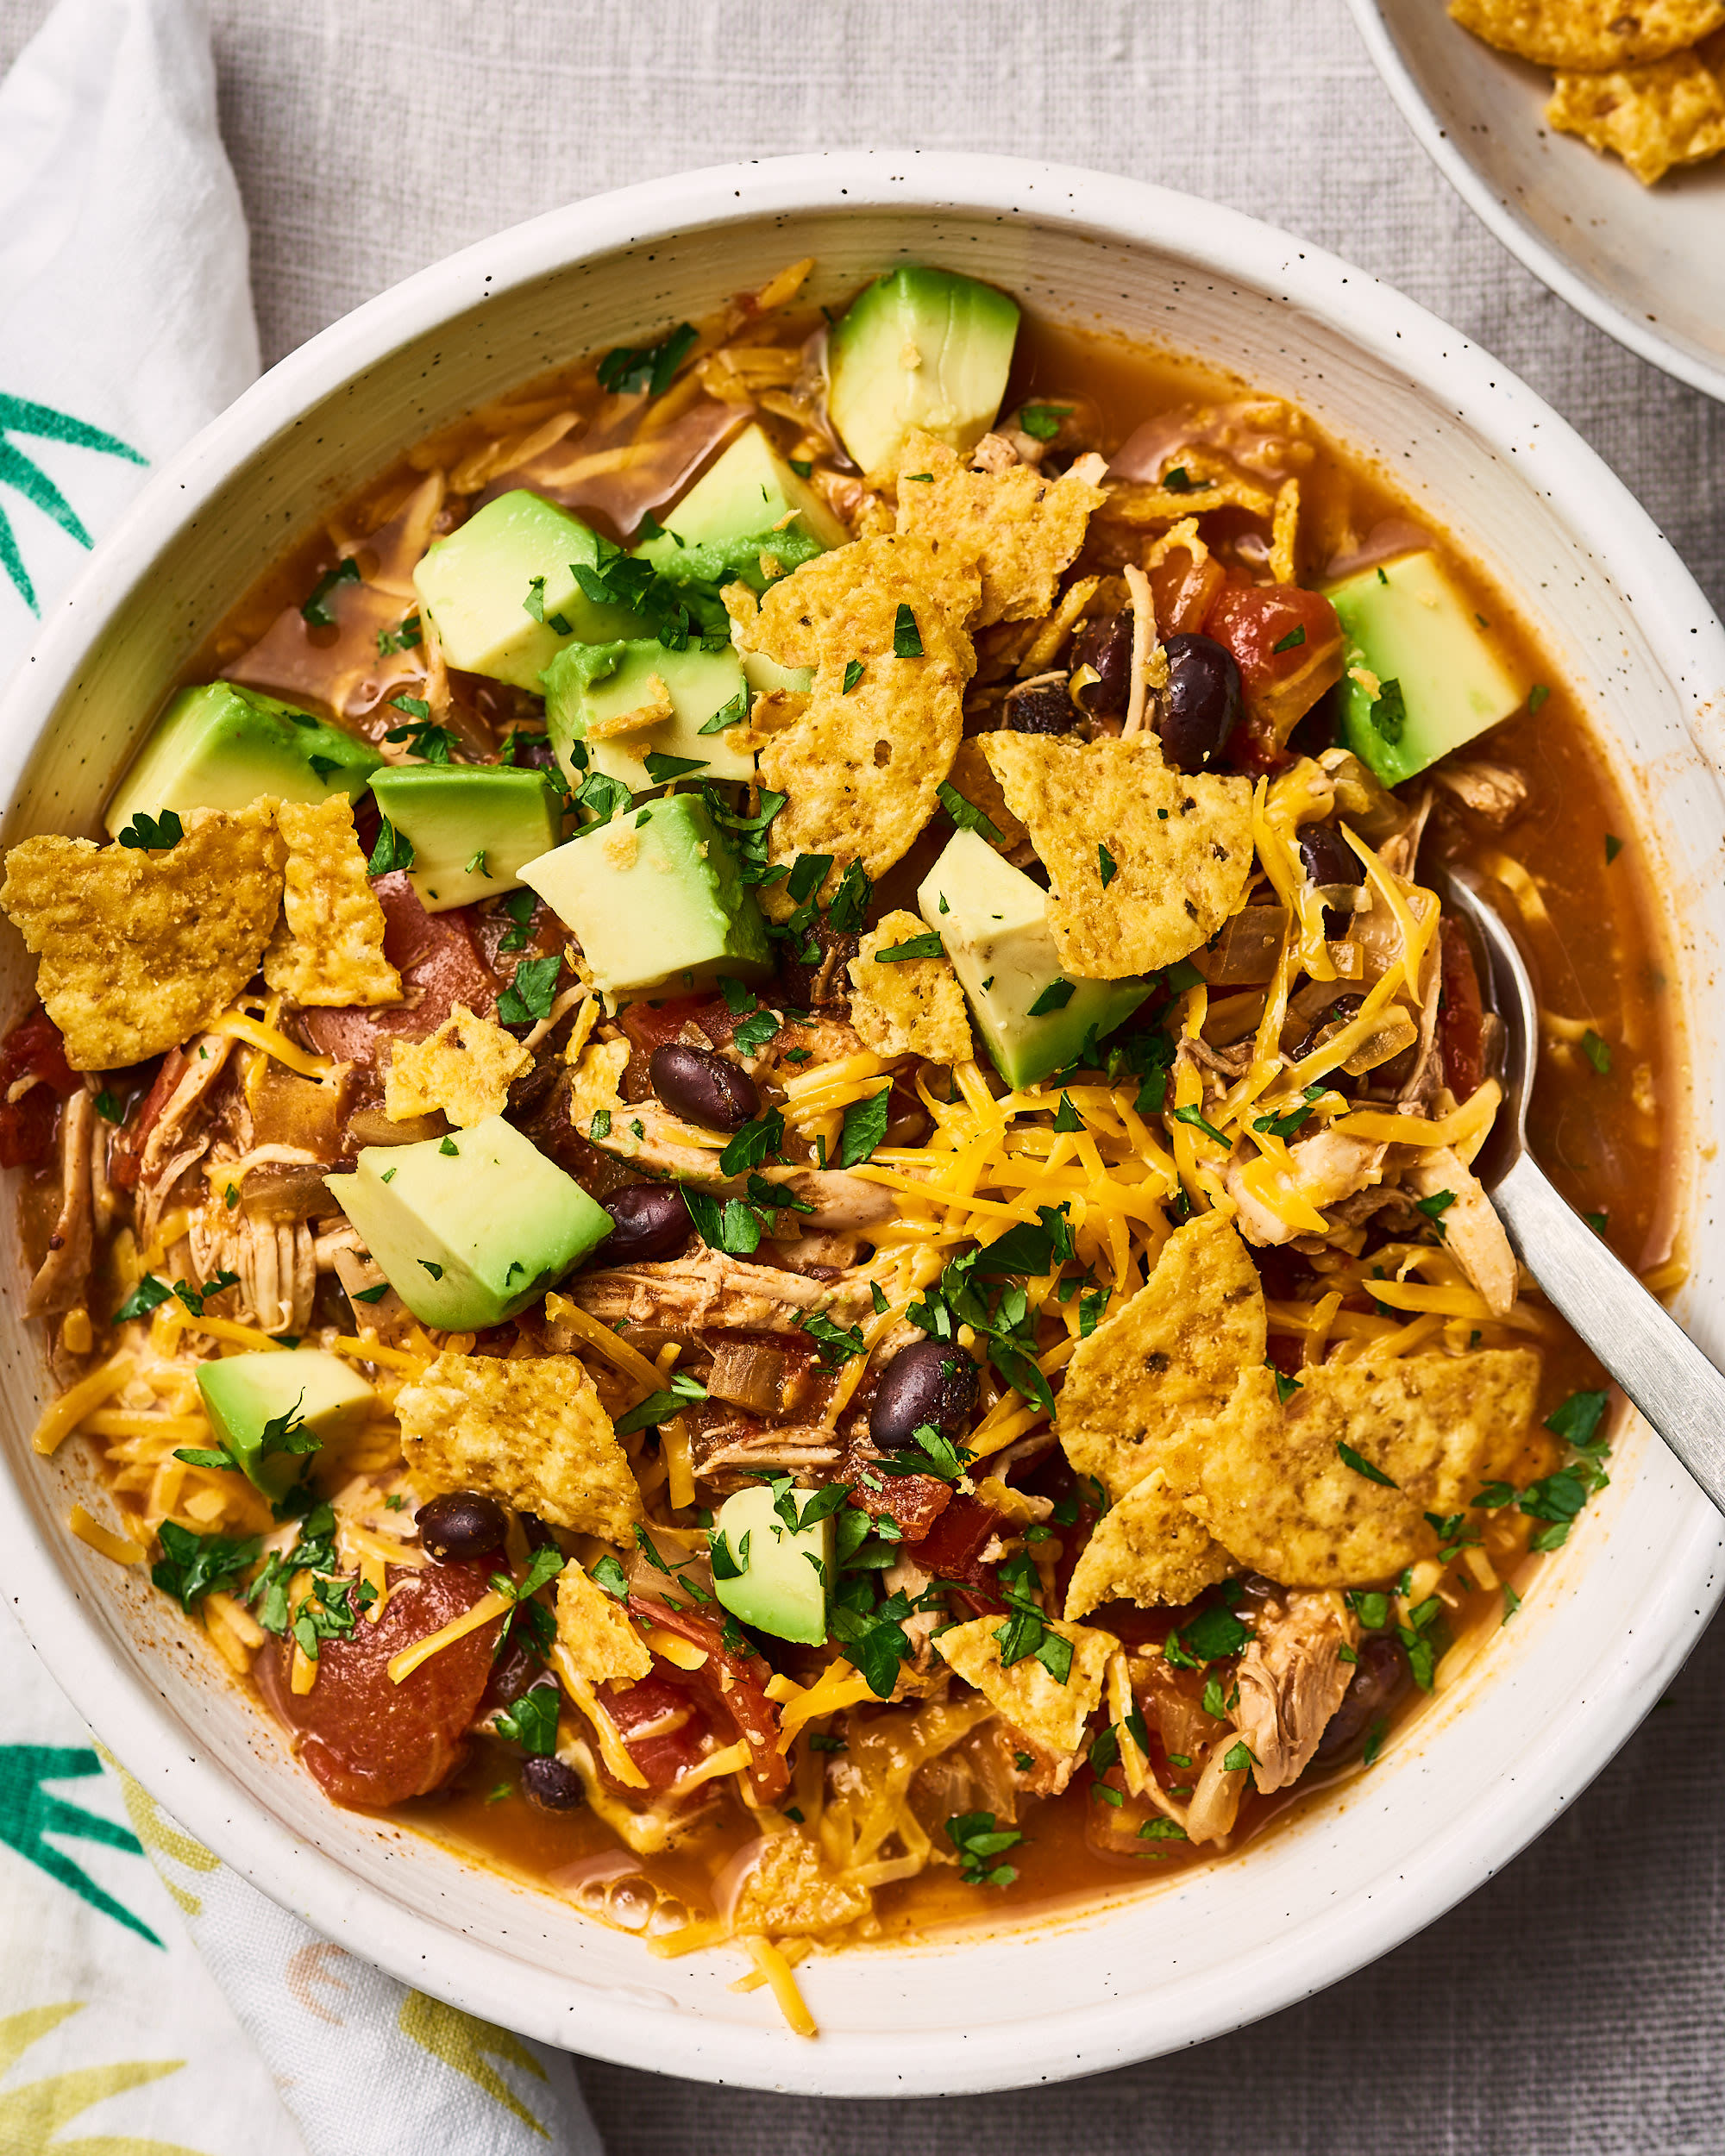 How To Make Weeknight-Friendly Chicken Tortilla Soup